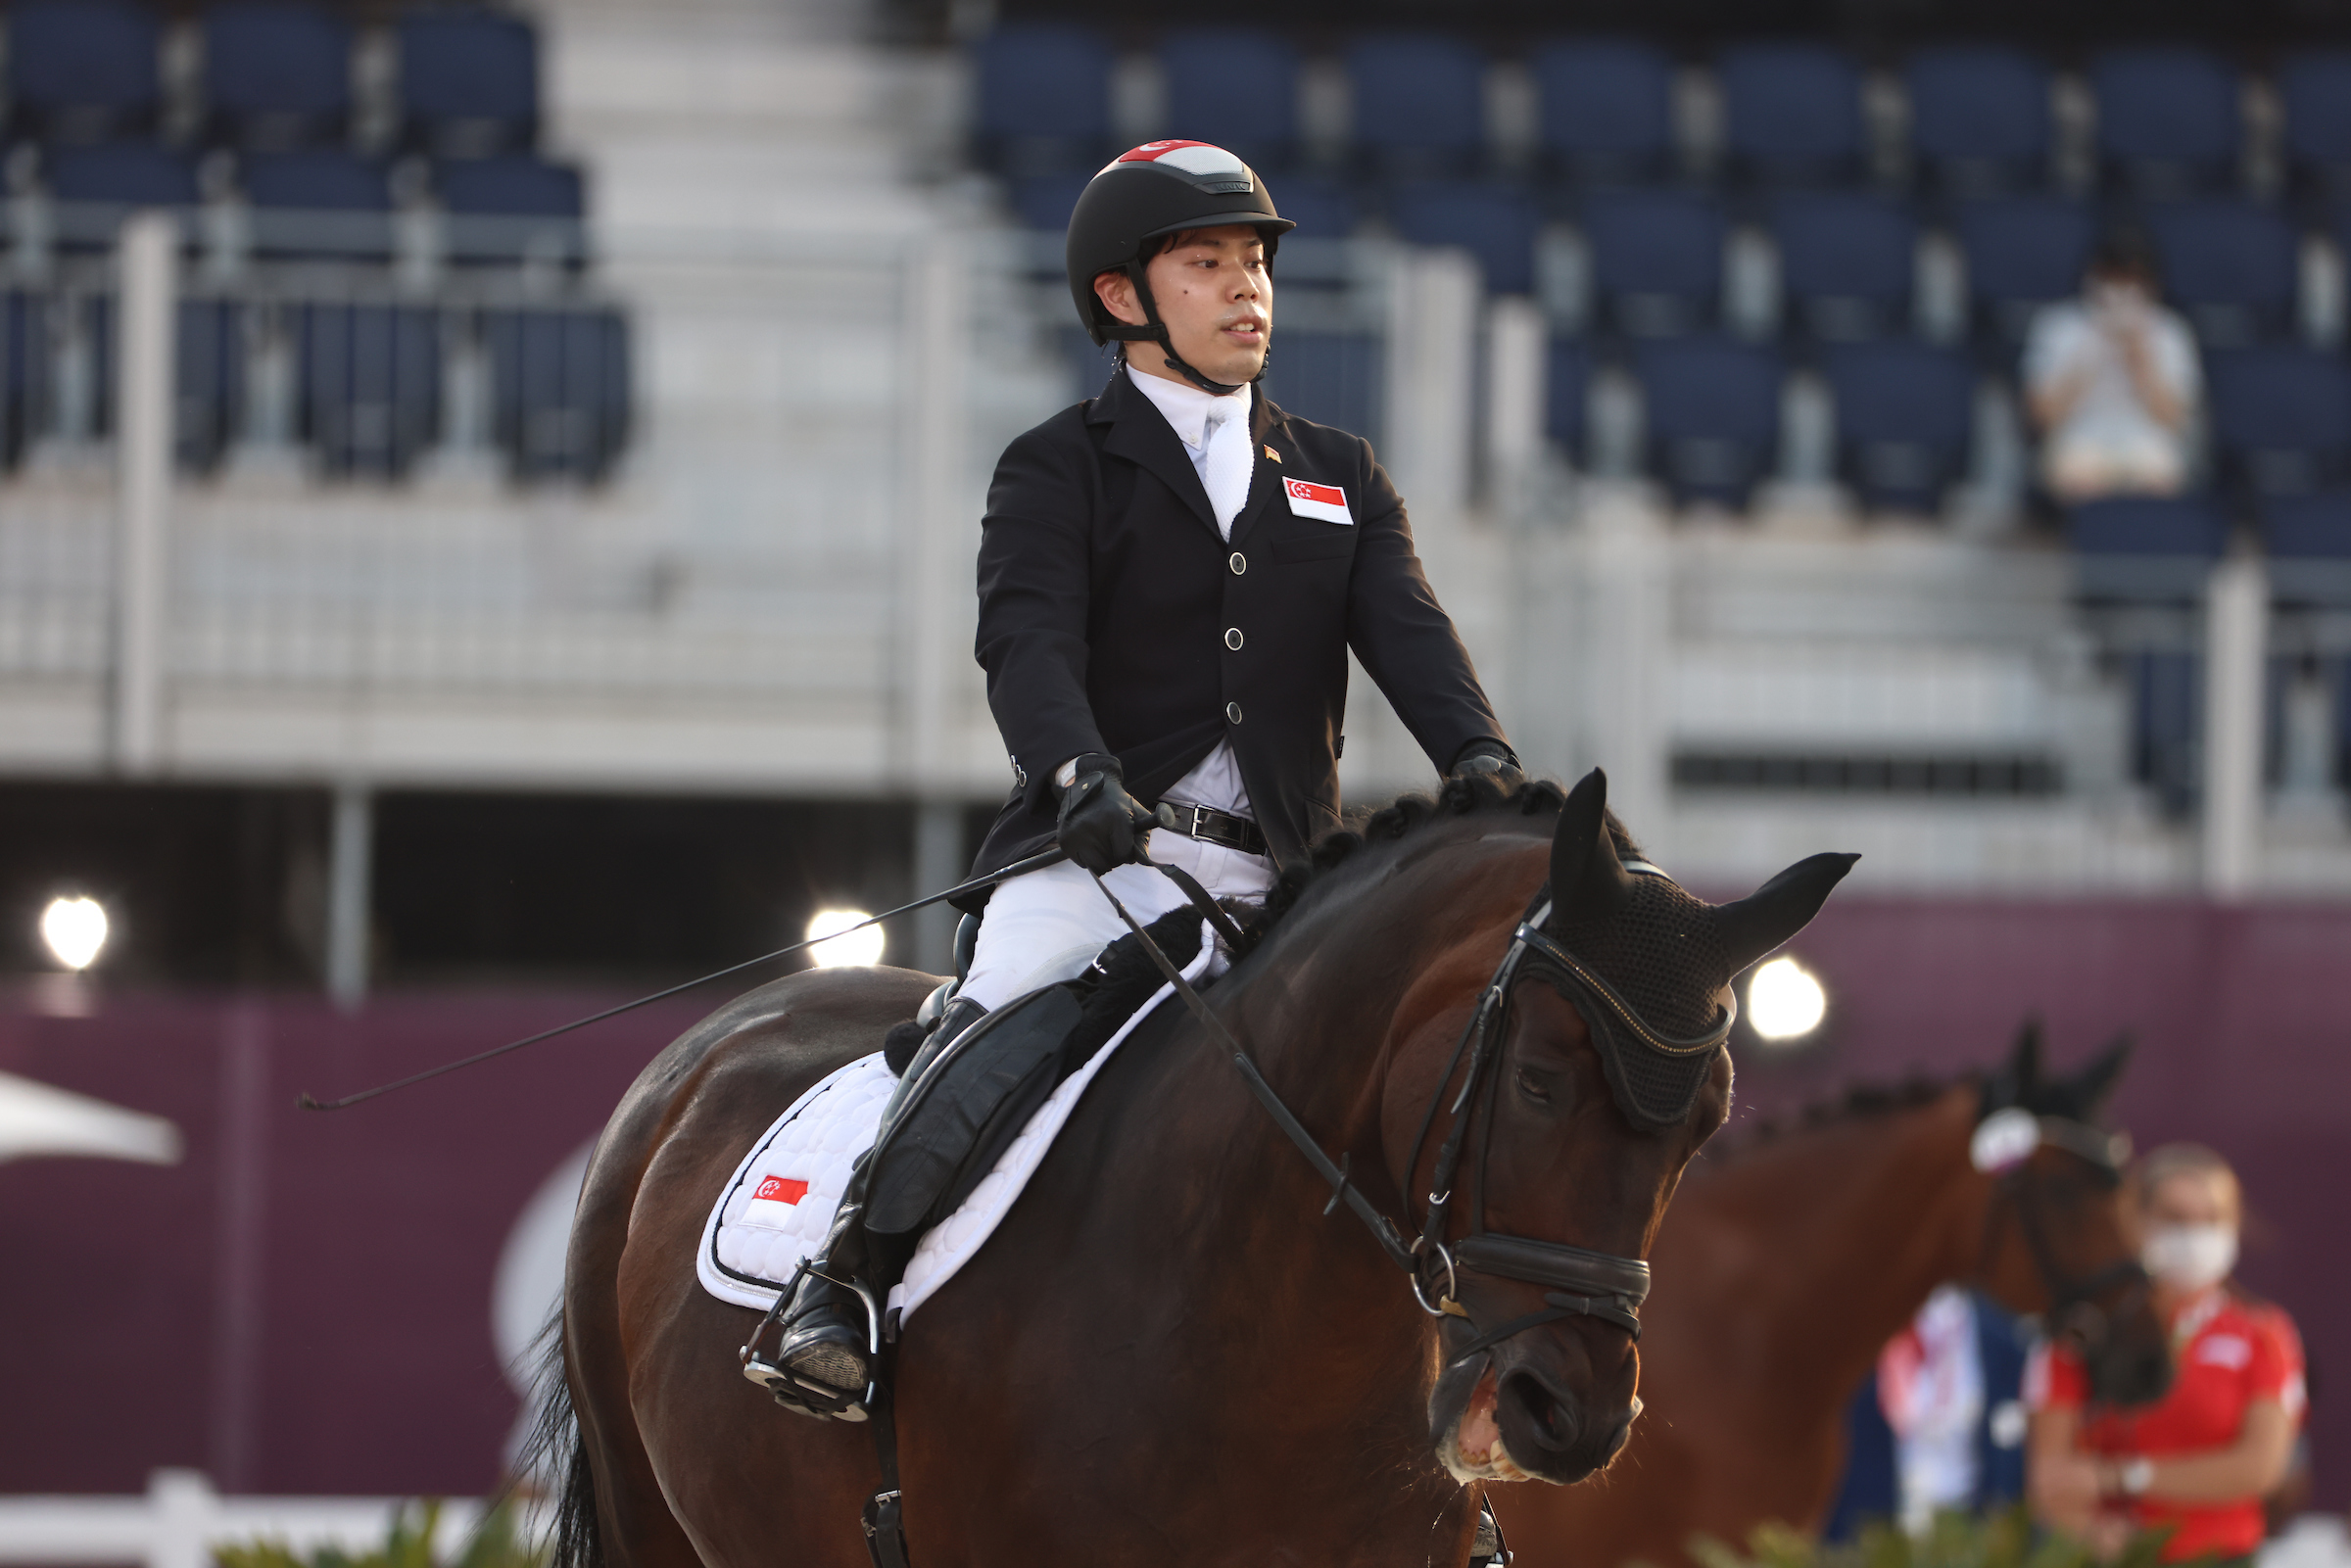 Tokyo 2020: TeamSG Para-Equestrian Maximillian Tan puts up decent Individual Dressage showing on 3rd Paralympic outing!